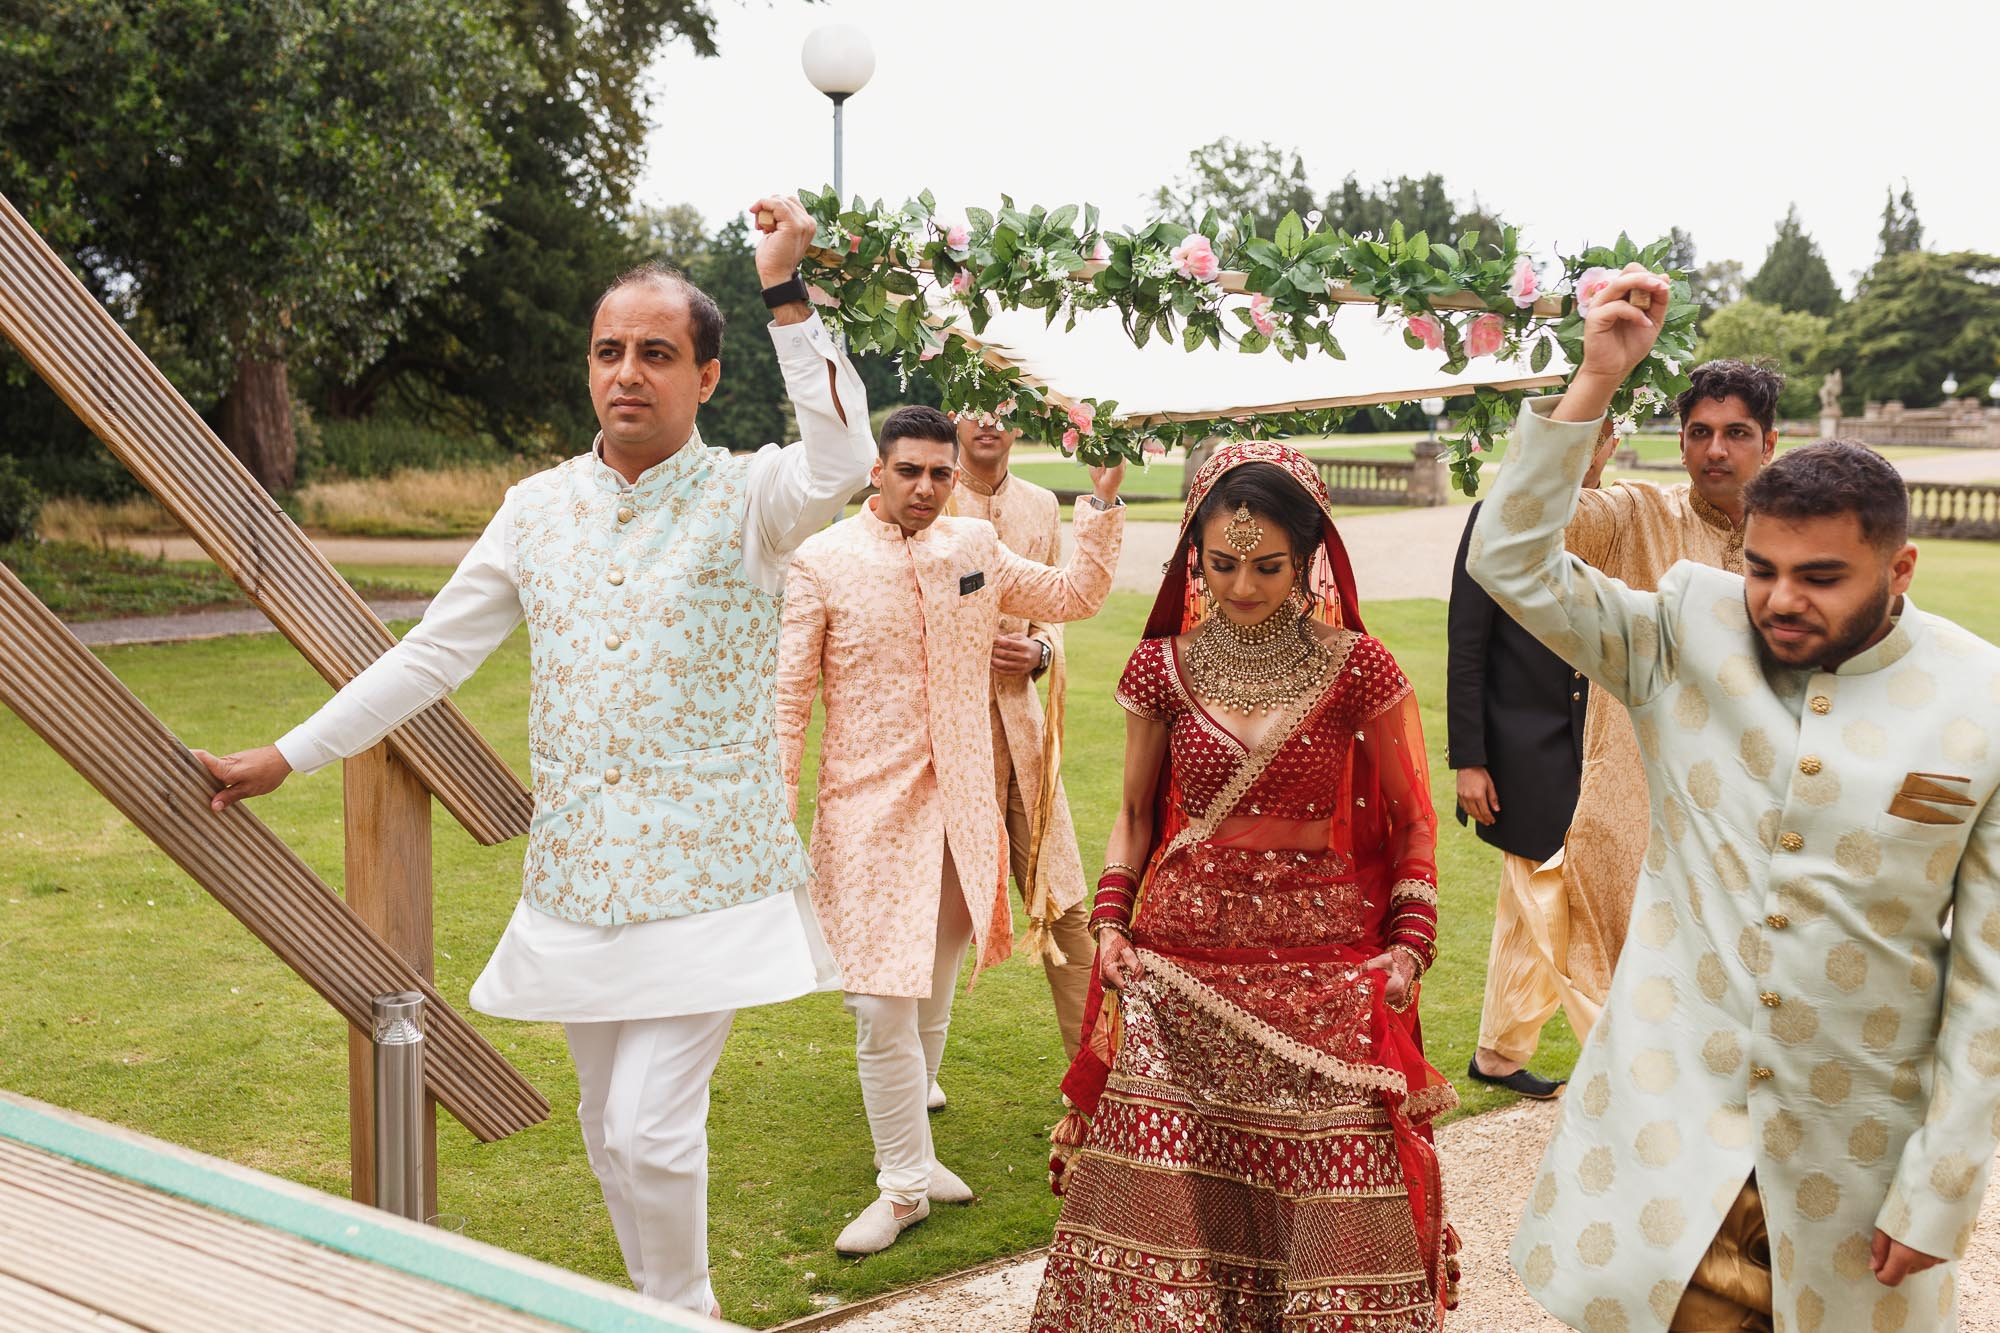 Heythrop Park Hotel, Oxfordshire, brides entrance, dholi